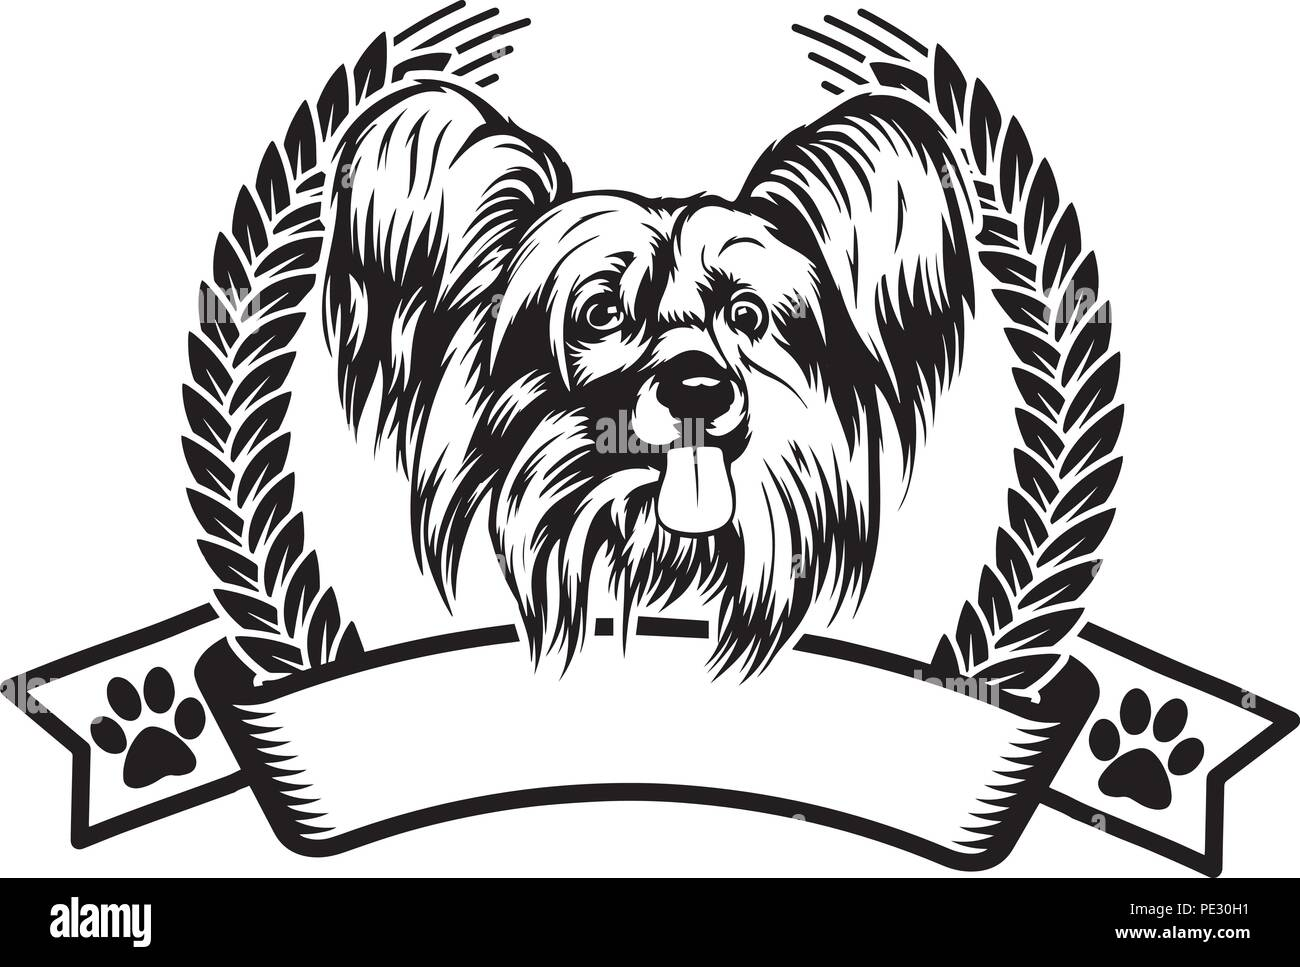 Chinese Crested Dog Breed Pet Puppy Isolated Head Face - Stock Vector